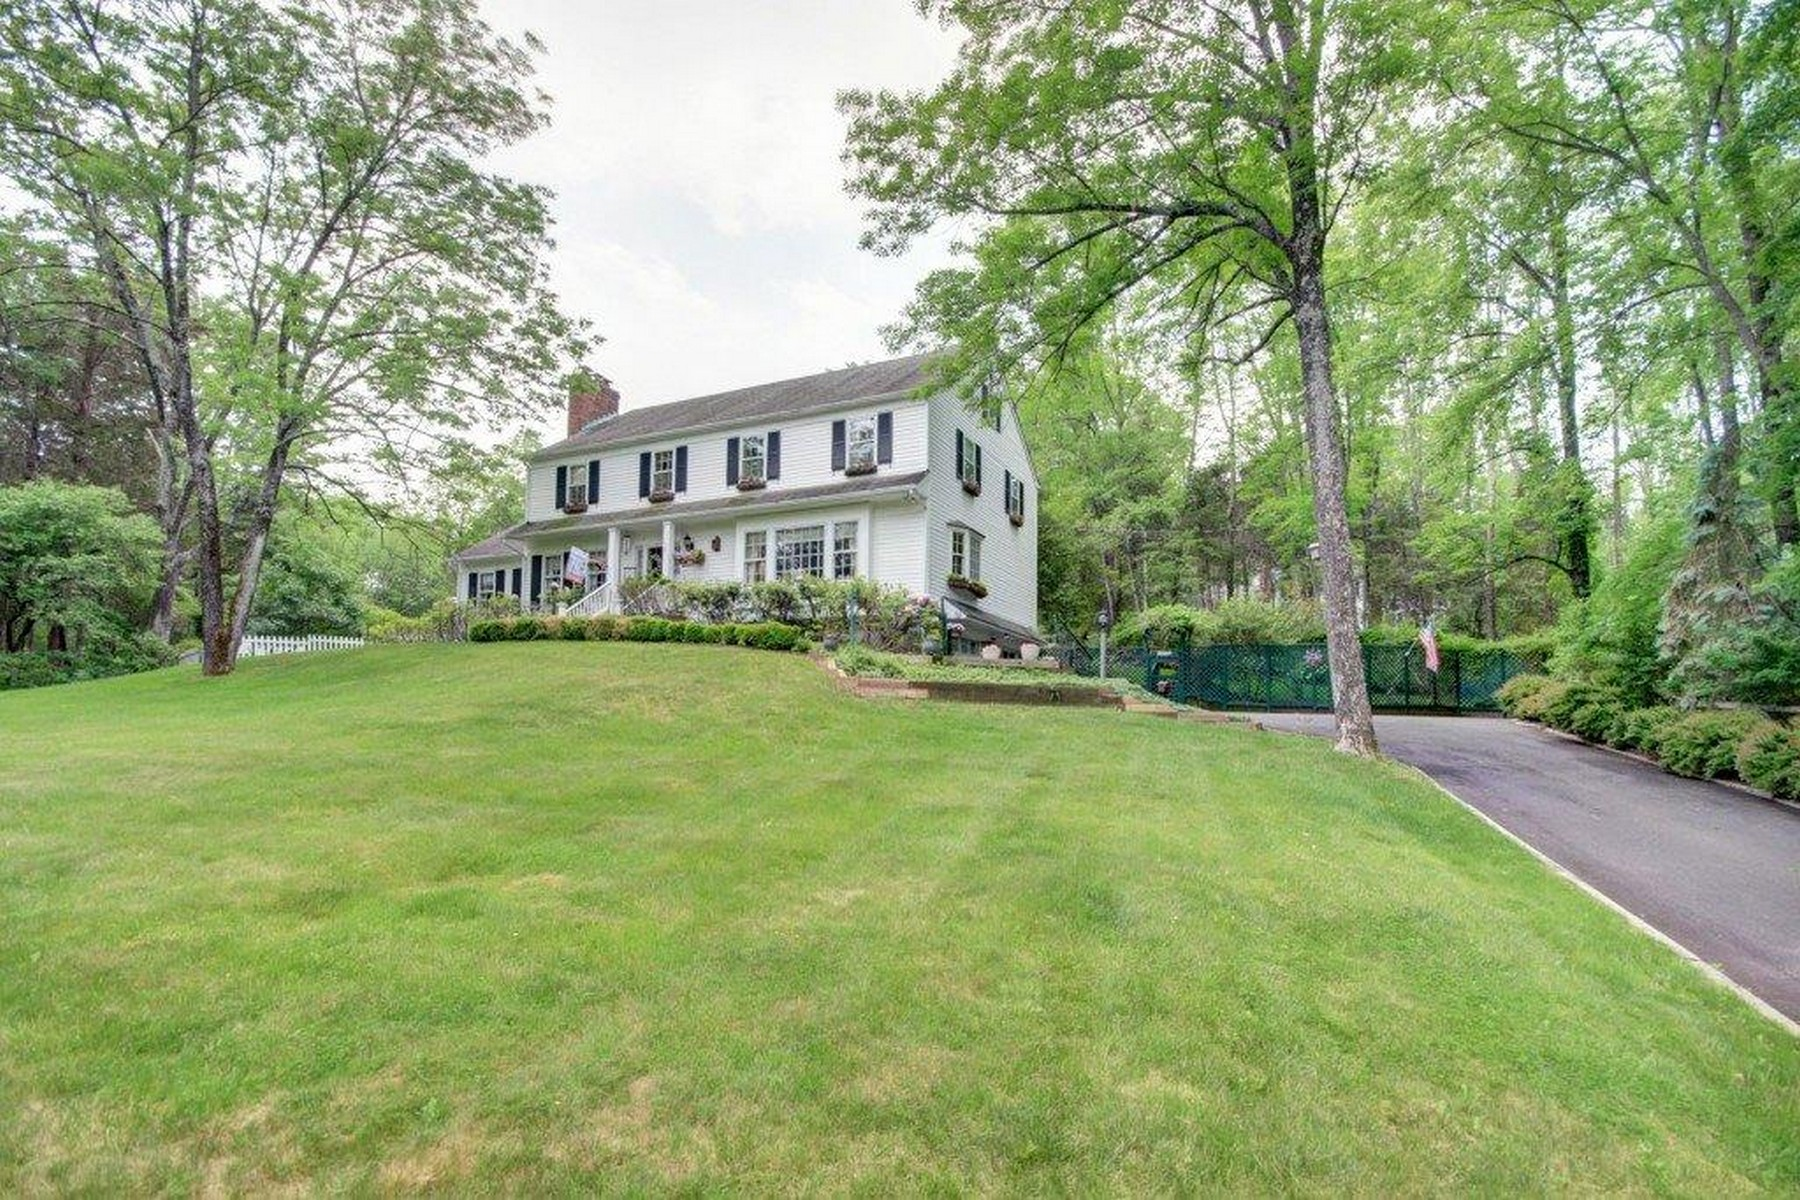 Single Family Homes for Sale at Charming Country Colonial 1 Cedar Place Gladstone, New Jersey 07934 United States